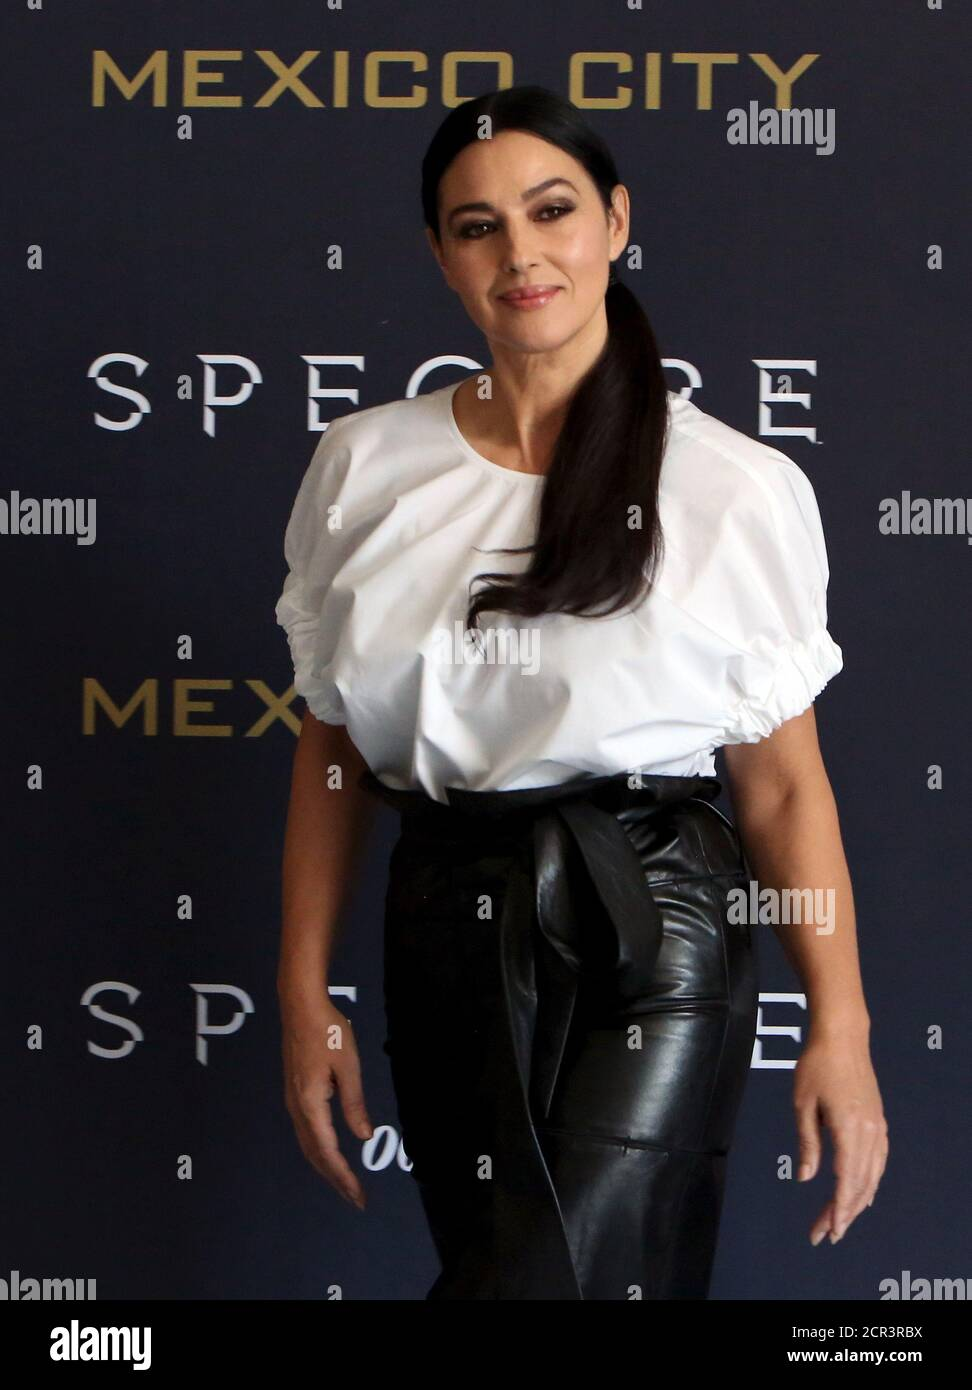 Spectre 2015 Mexico High Resolution Stock Photography And Images Alamy